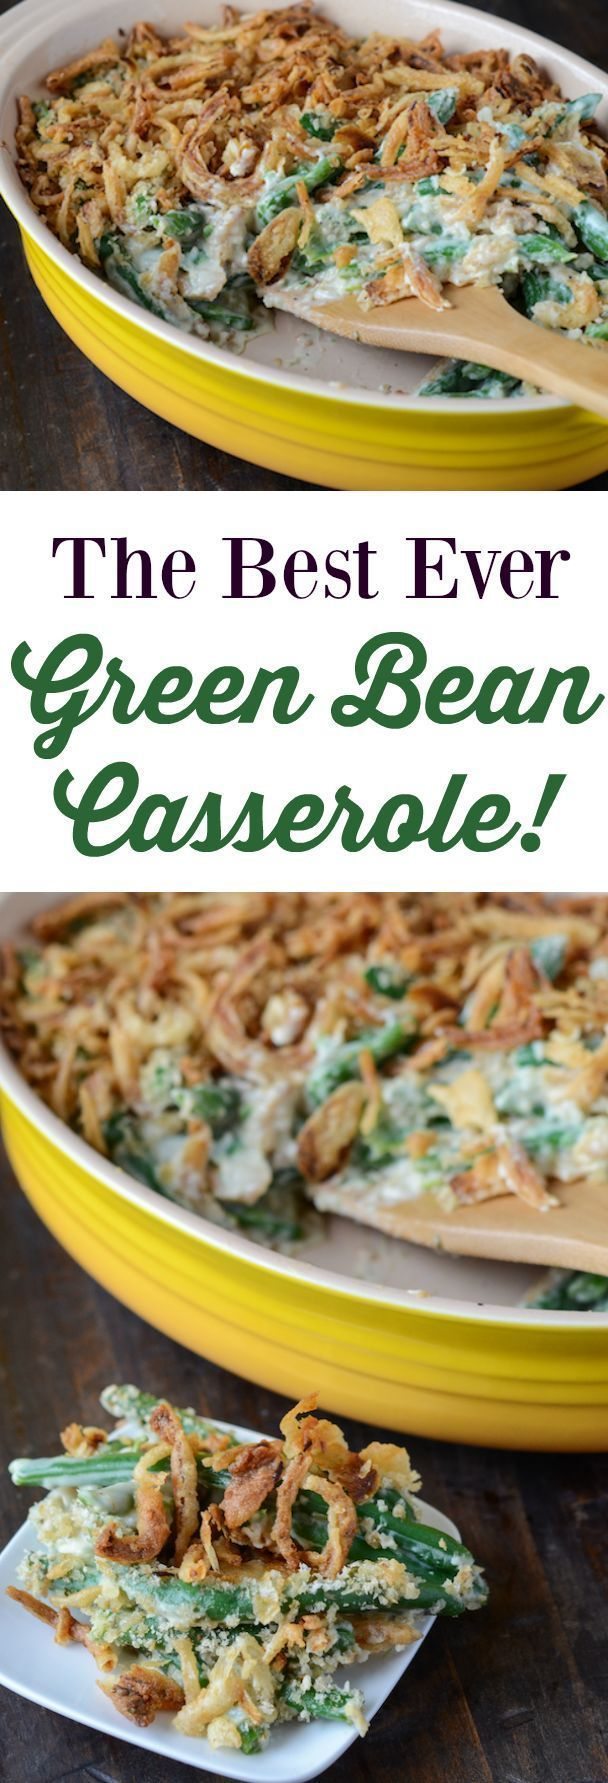 The Best Green Bean Casserole! No cans - just fresh ingredients!